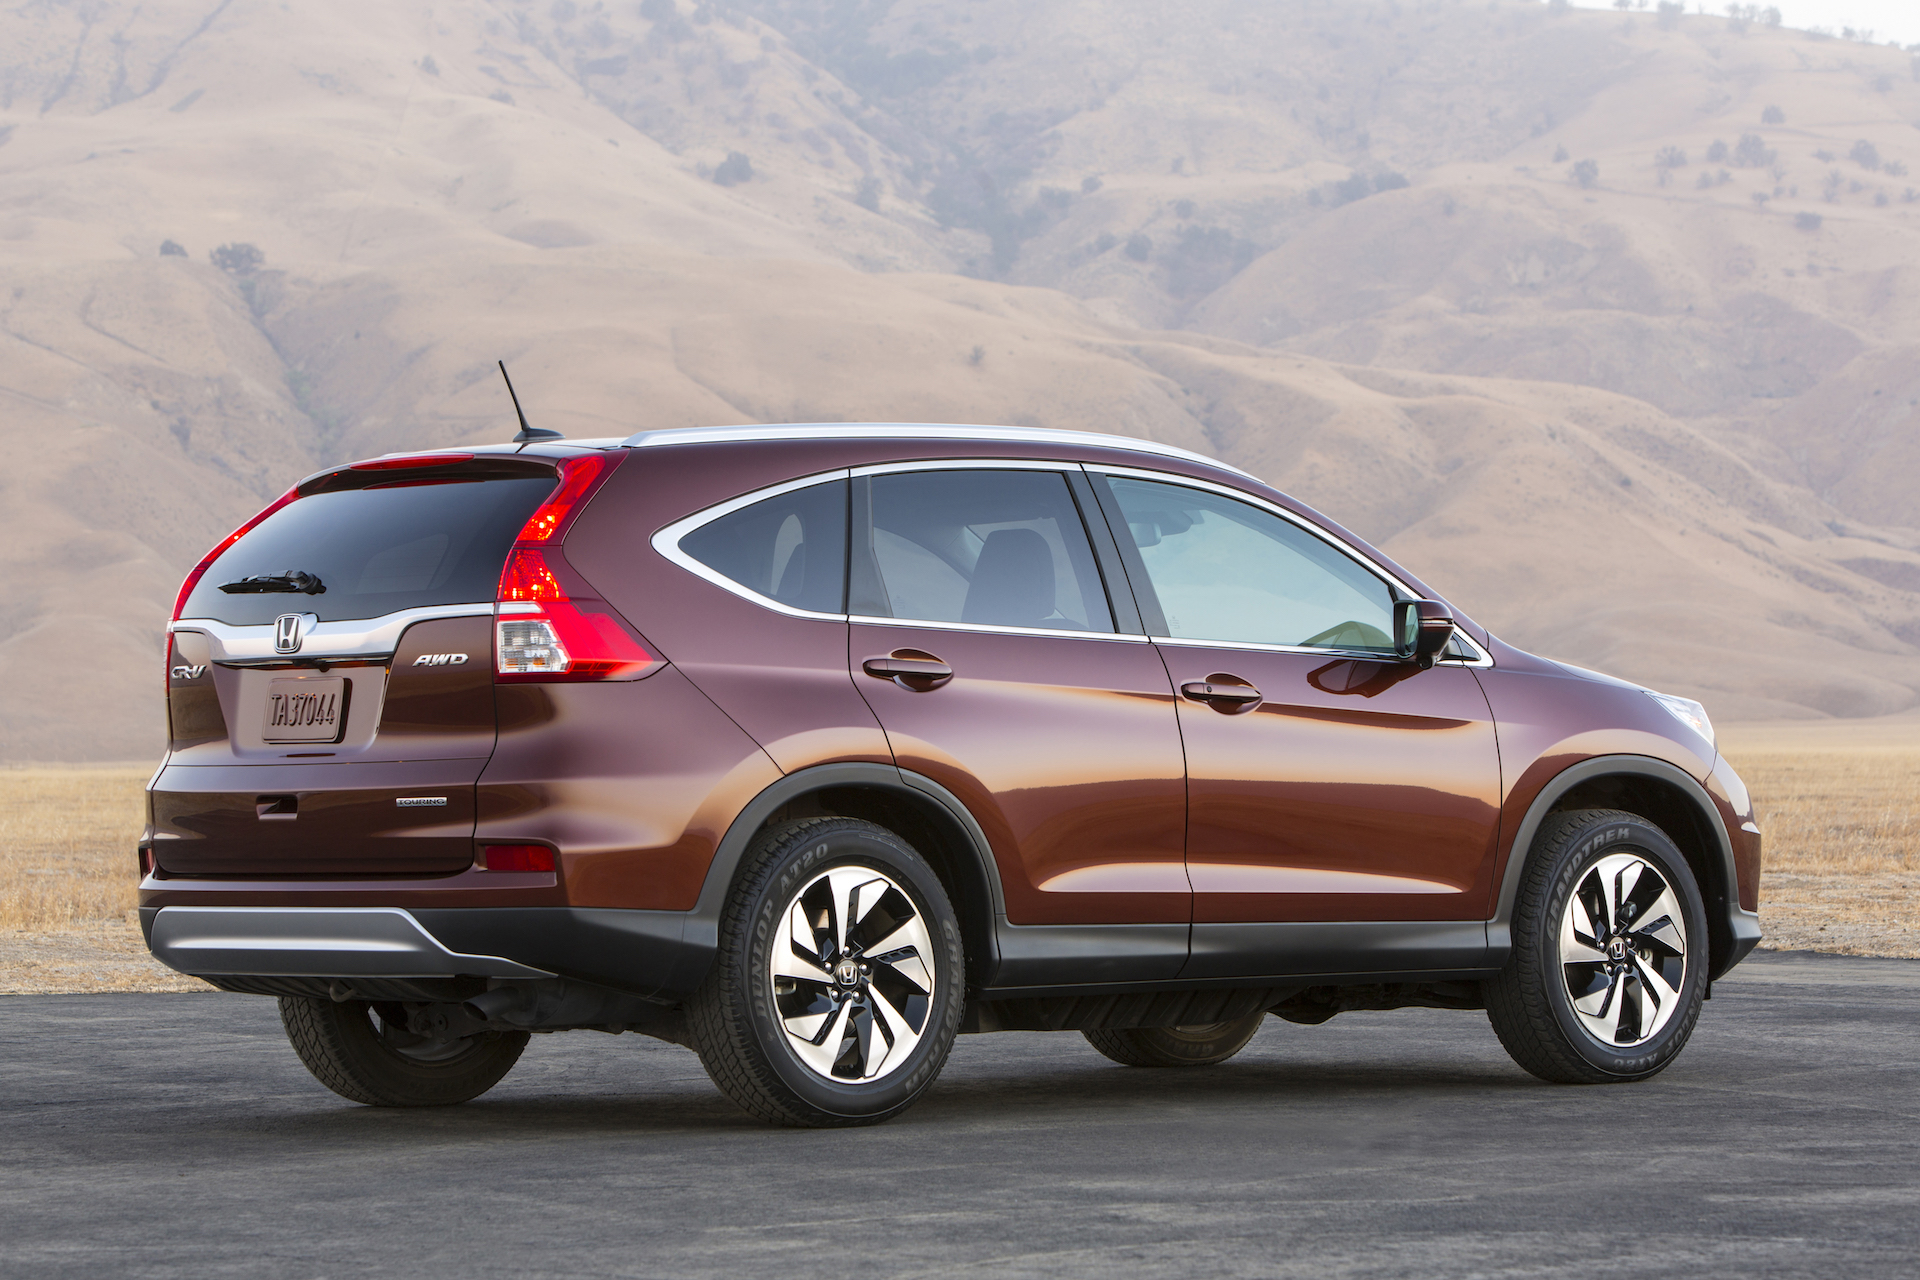 Rough-Idle Complaints Roll In For 2015 CR-V: Honda Working